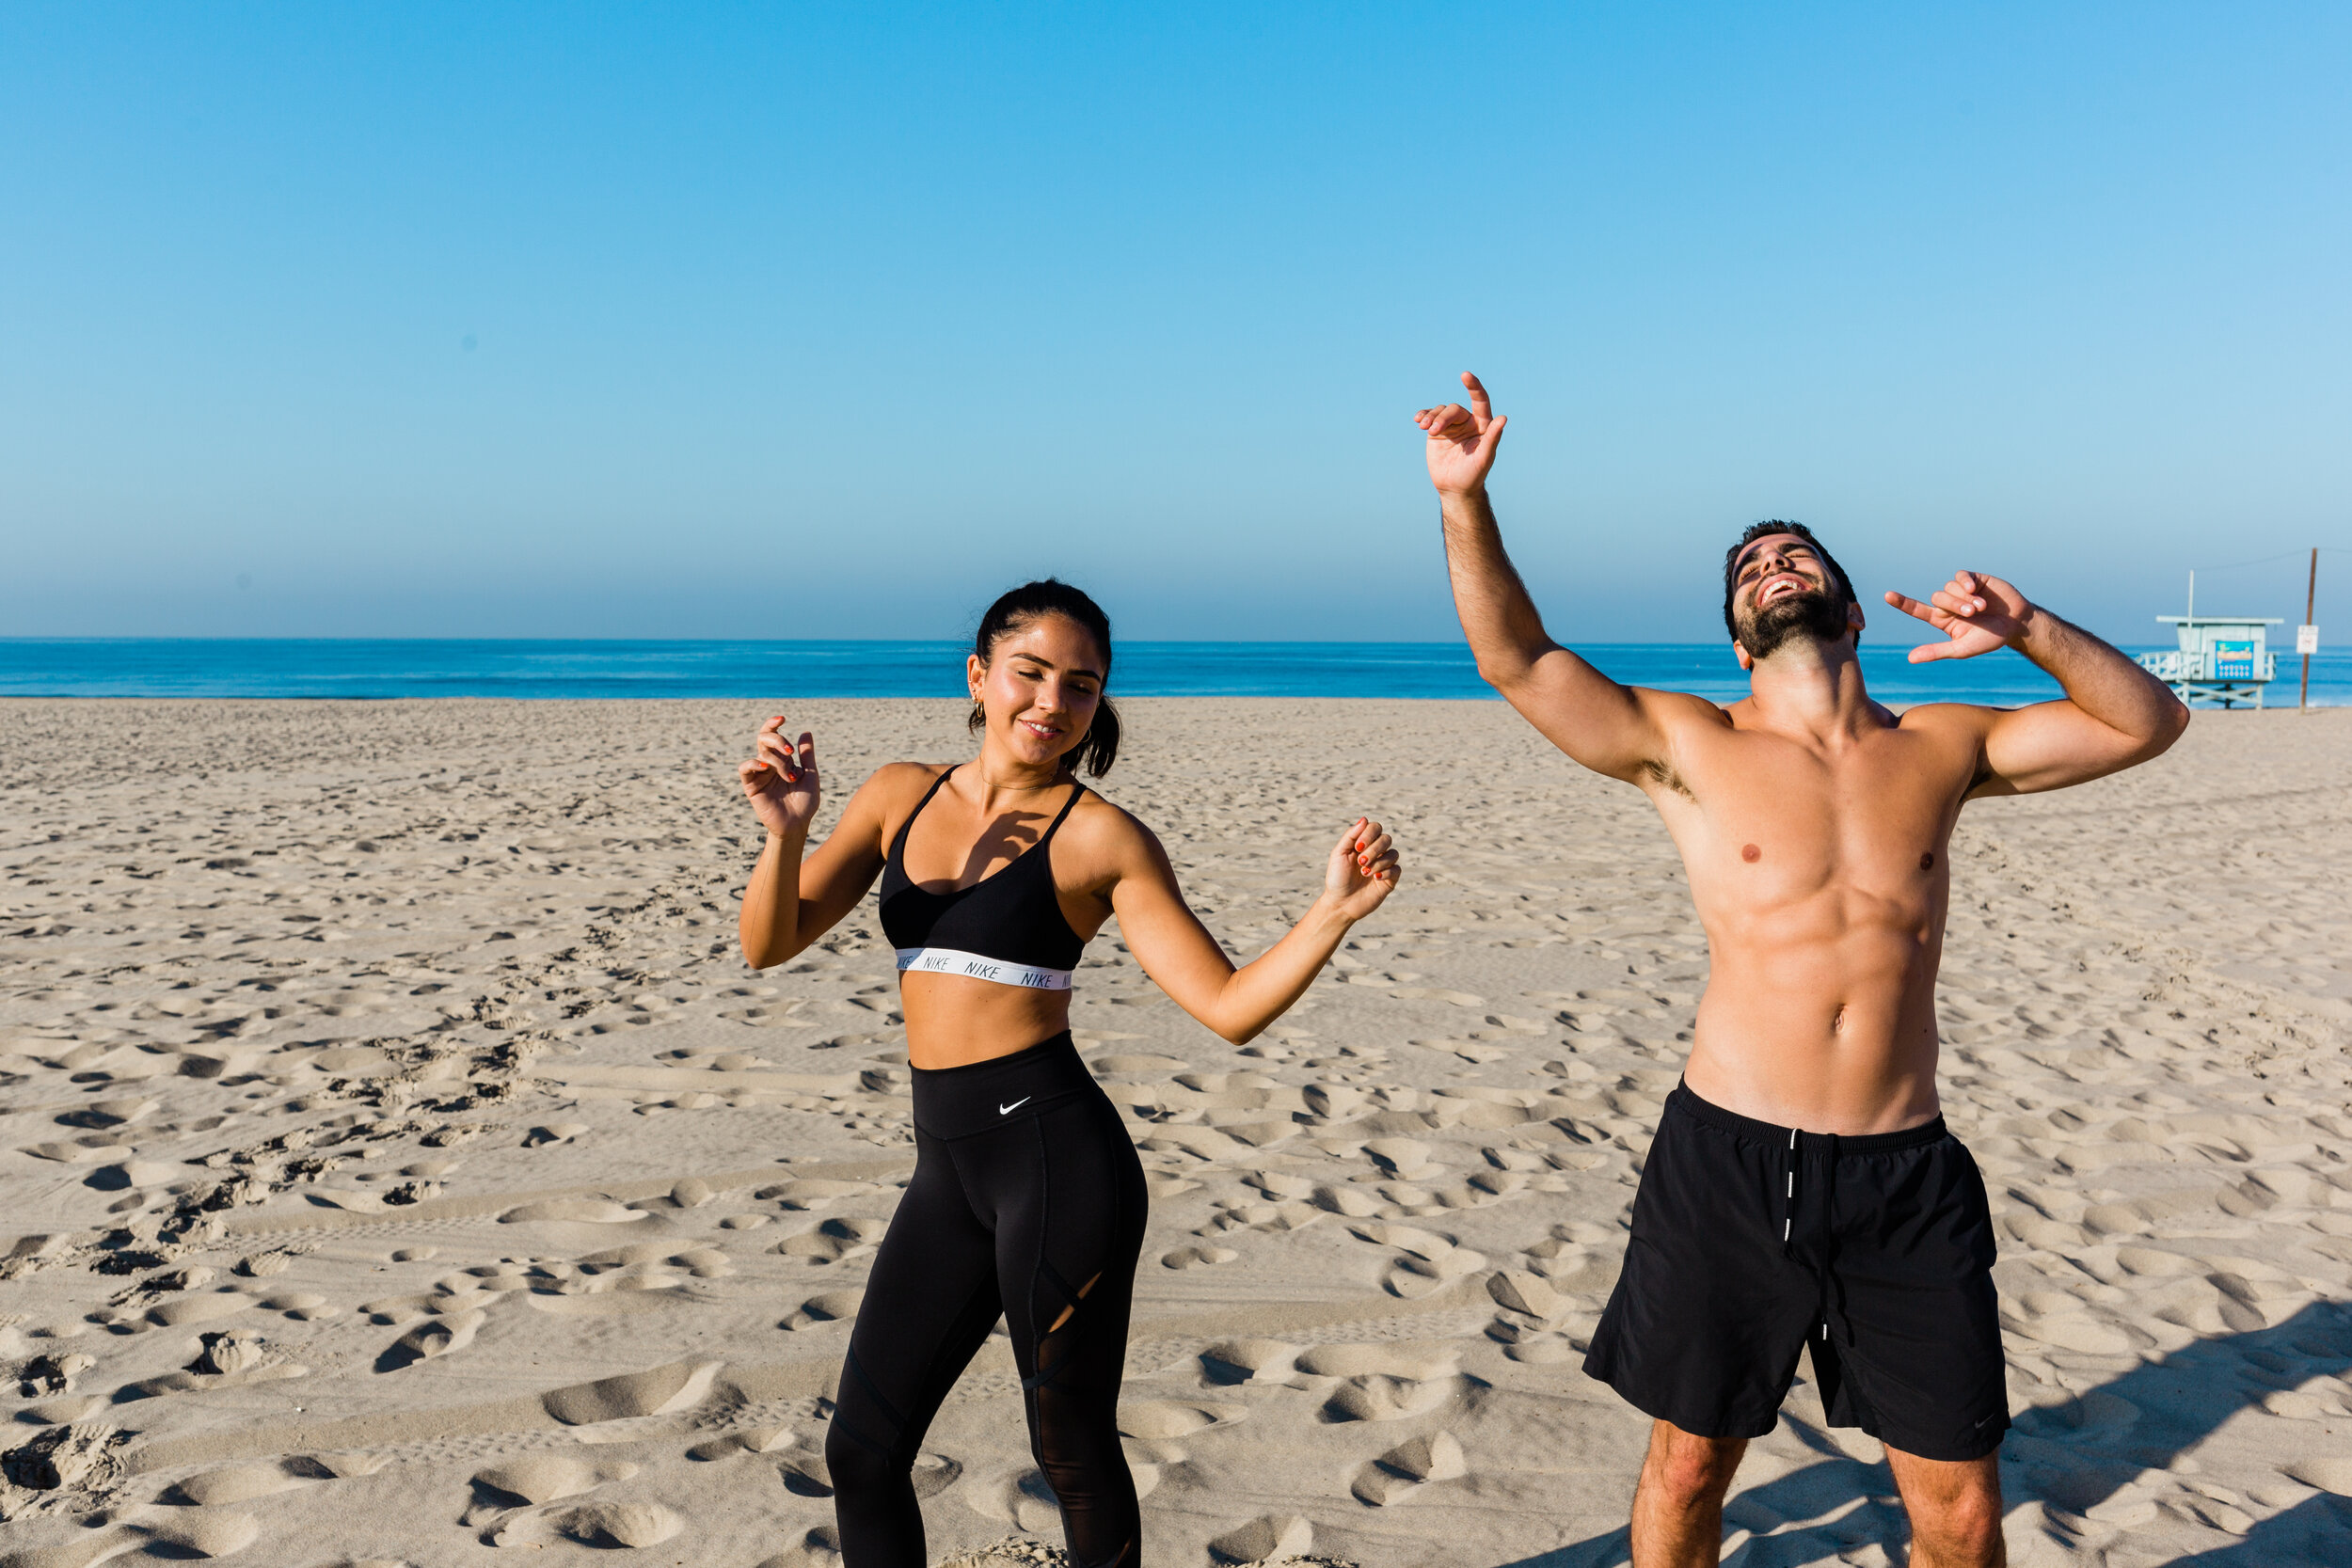 I created Movemnt with my bestie Dotan Ryder - We're all about bringing fun back into fitness and doing so by providing wellness content focused on the long-term health of the body and mind while facilitating the way for people to build community.